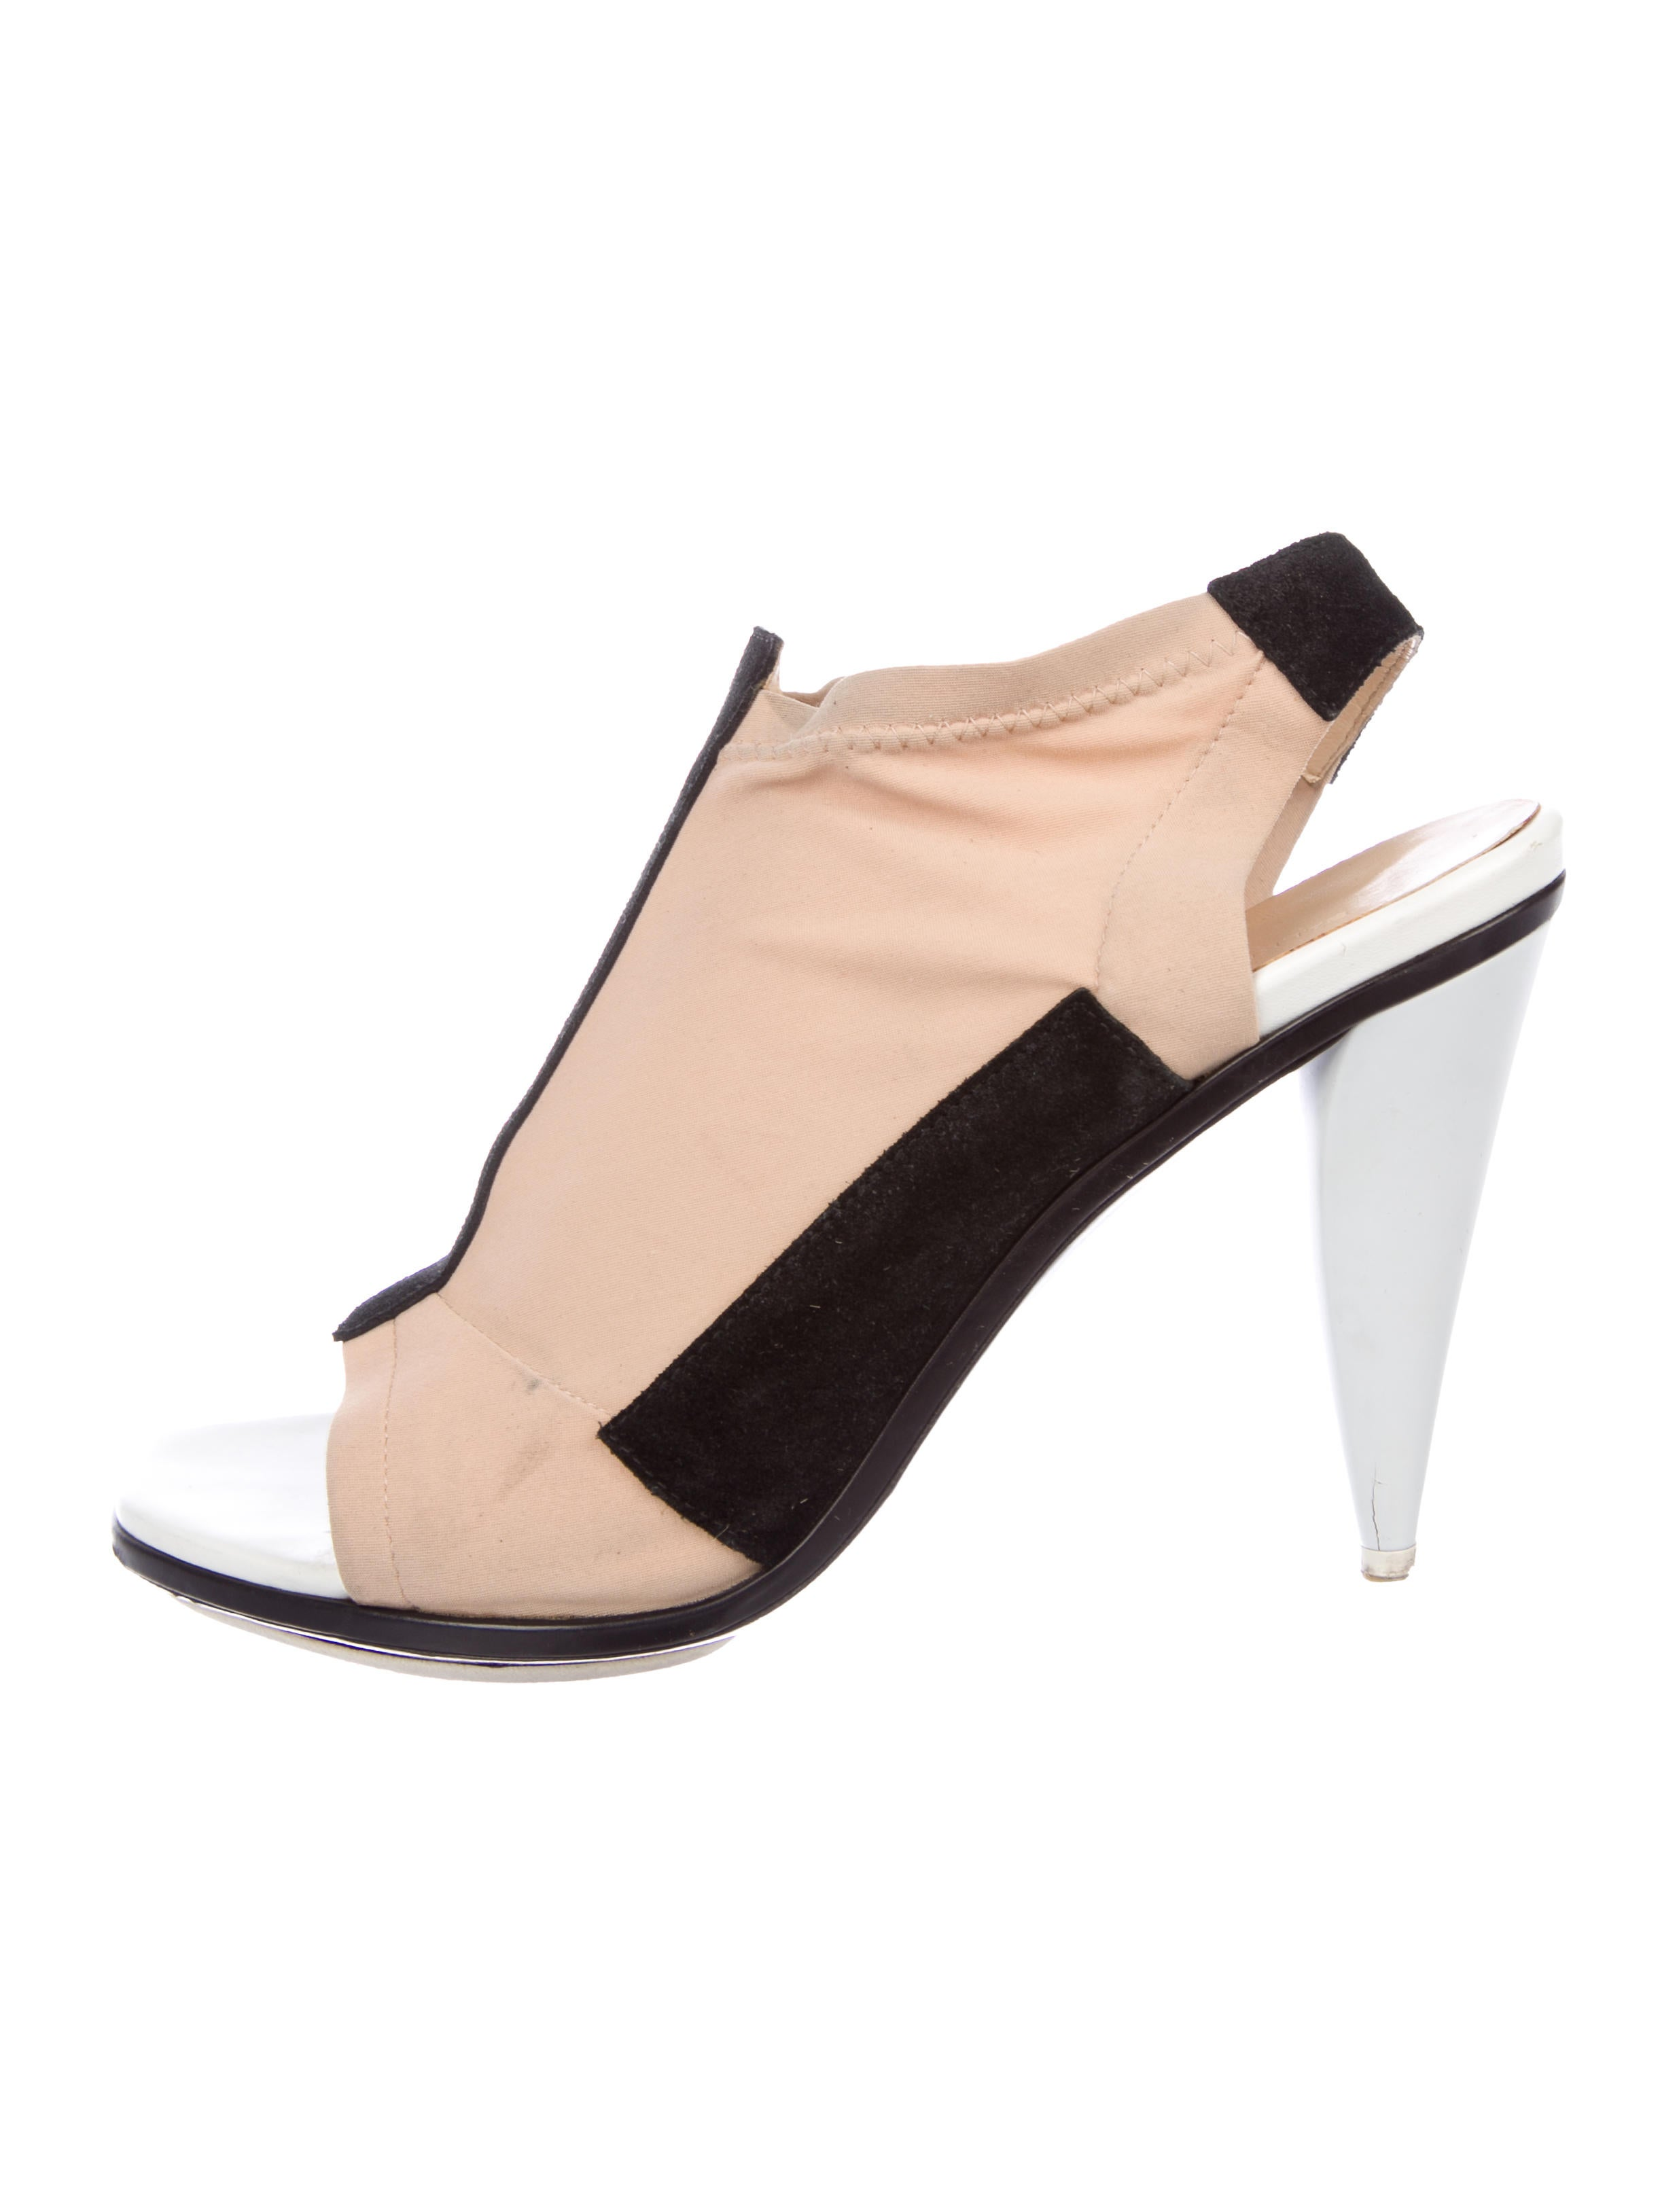 outlet pay with paypal buy cheap reliable Balenciaga Neoprene Slingback Booties OSkZddVf